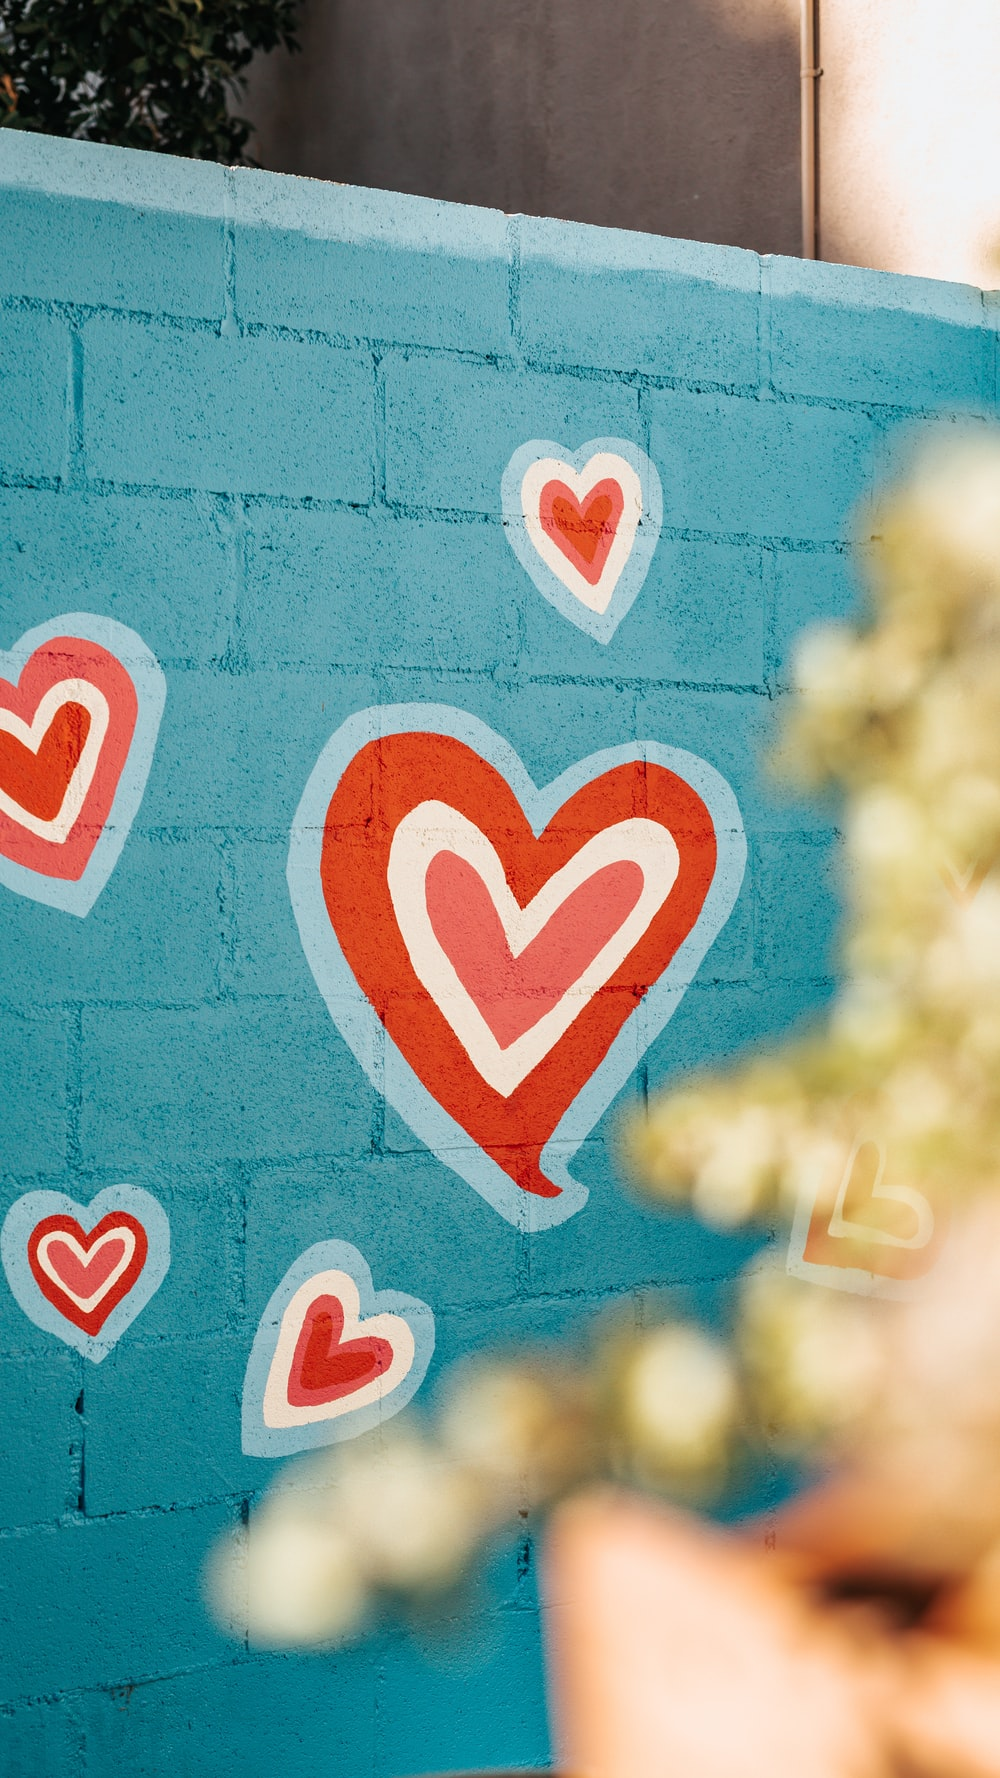 500 Heart Images Download Free Pictures On Unsplash